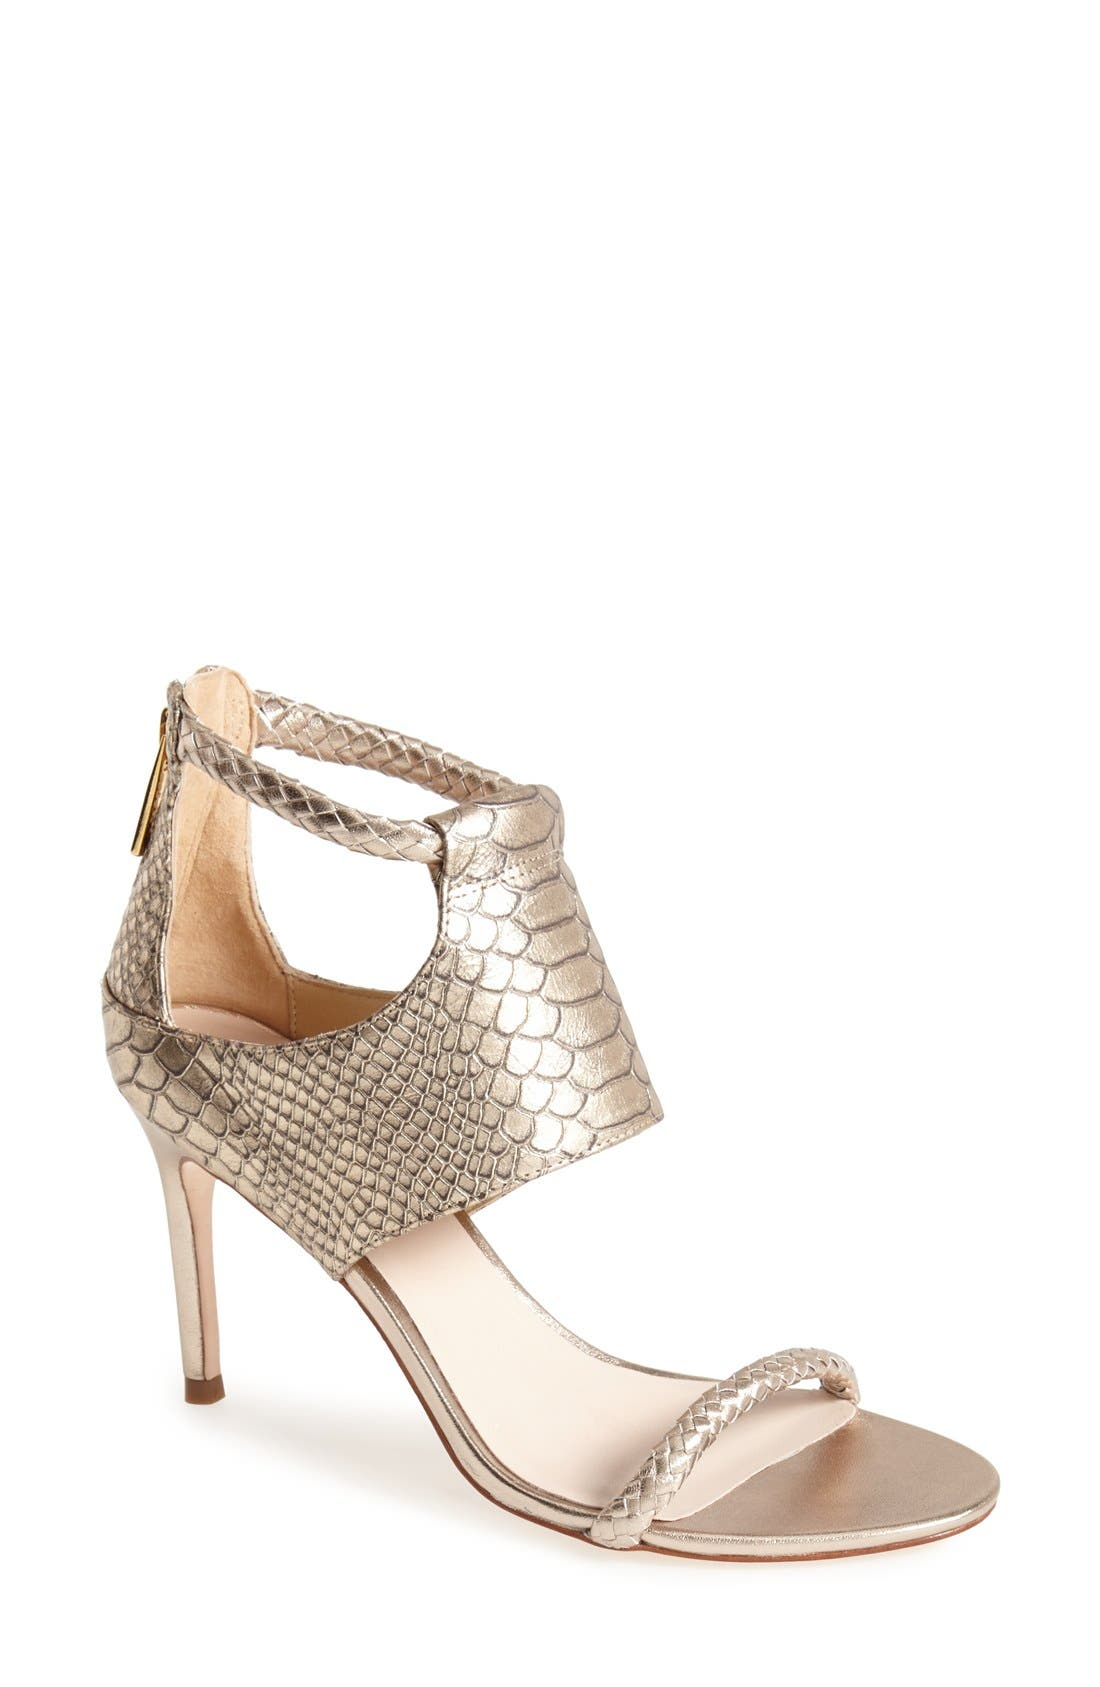 Alternate Image 1 Selected - Cole Haan 'Lise' Ankle Cuff Sandal (Women)